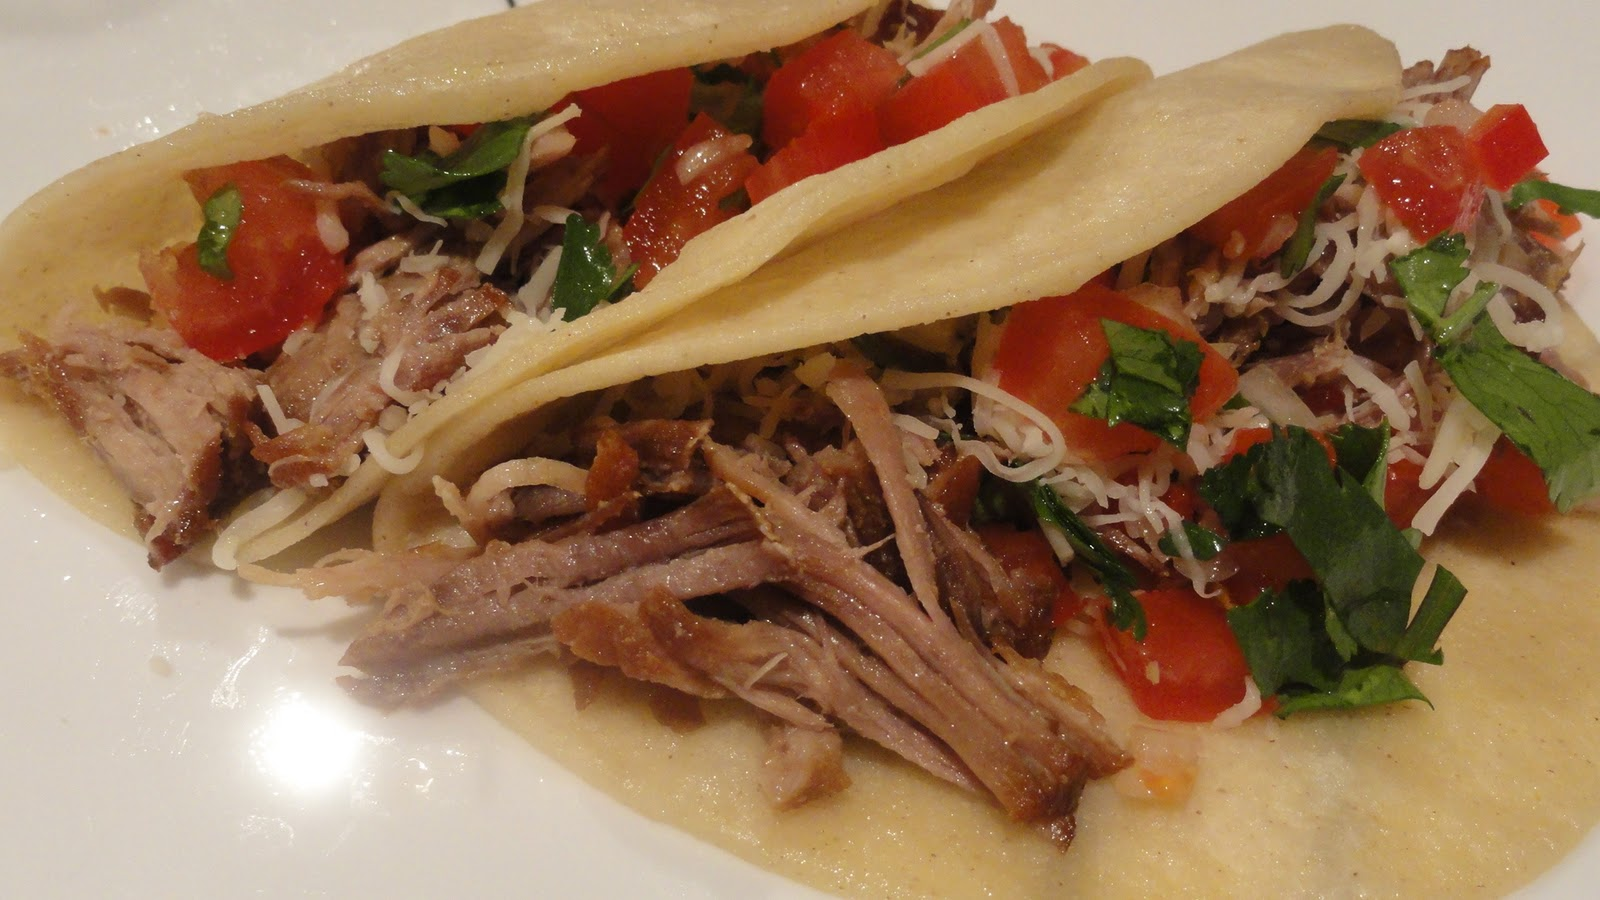 The On-Call Cook: Coke-Braised Pork Carnitas Tacos